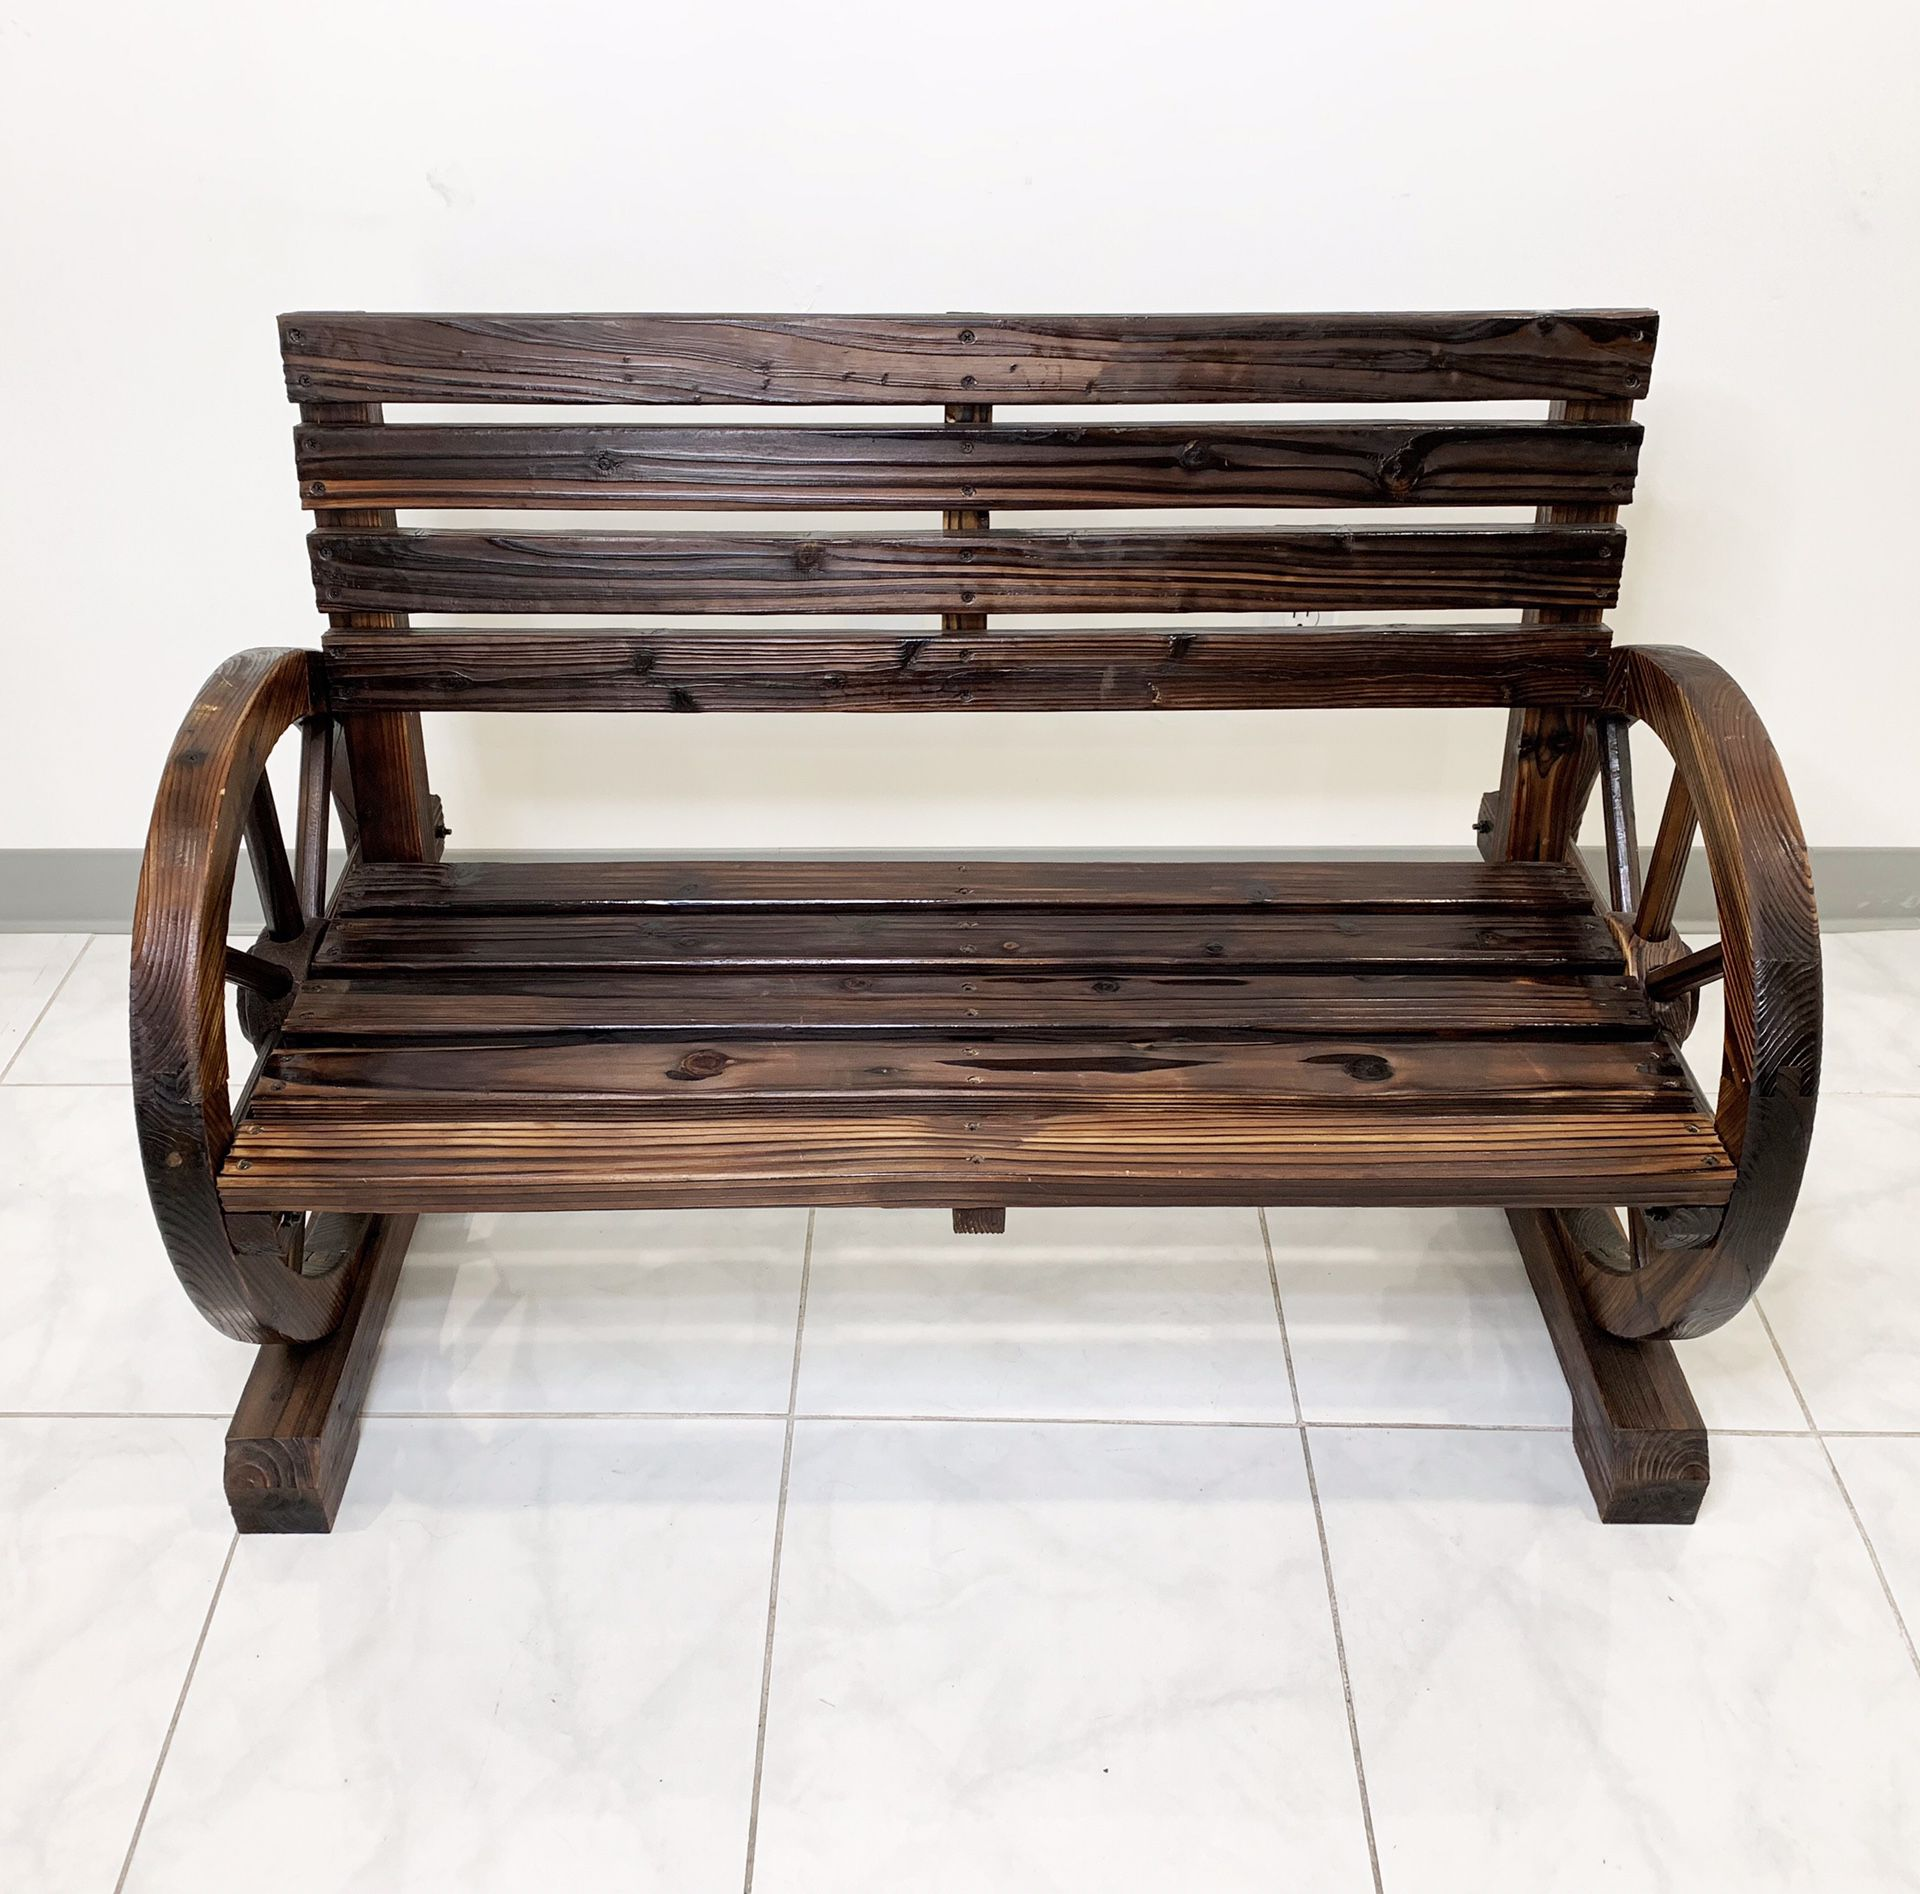 """$100 New In Box Solid Wood 41"""" Wide Patio Wooden Bench Rustic Wagon Wheels Outdoor Garden 41x20x30 Inches"""